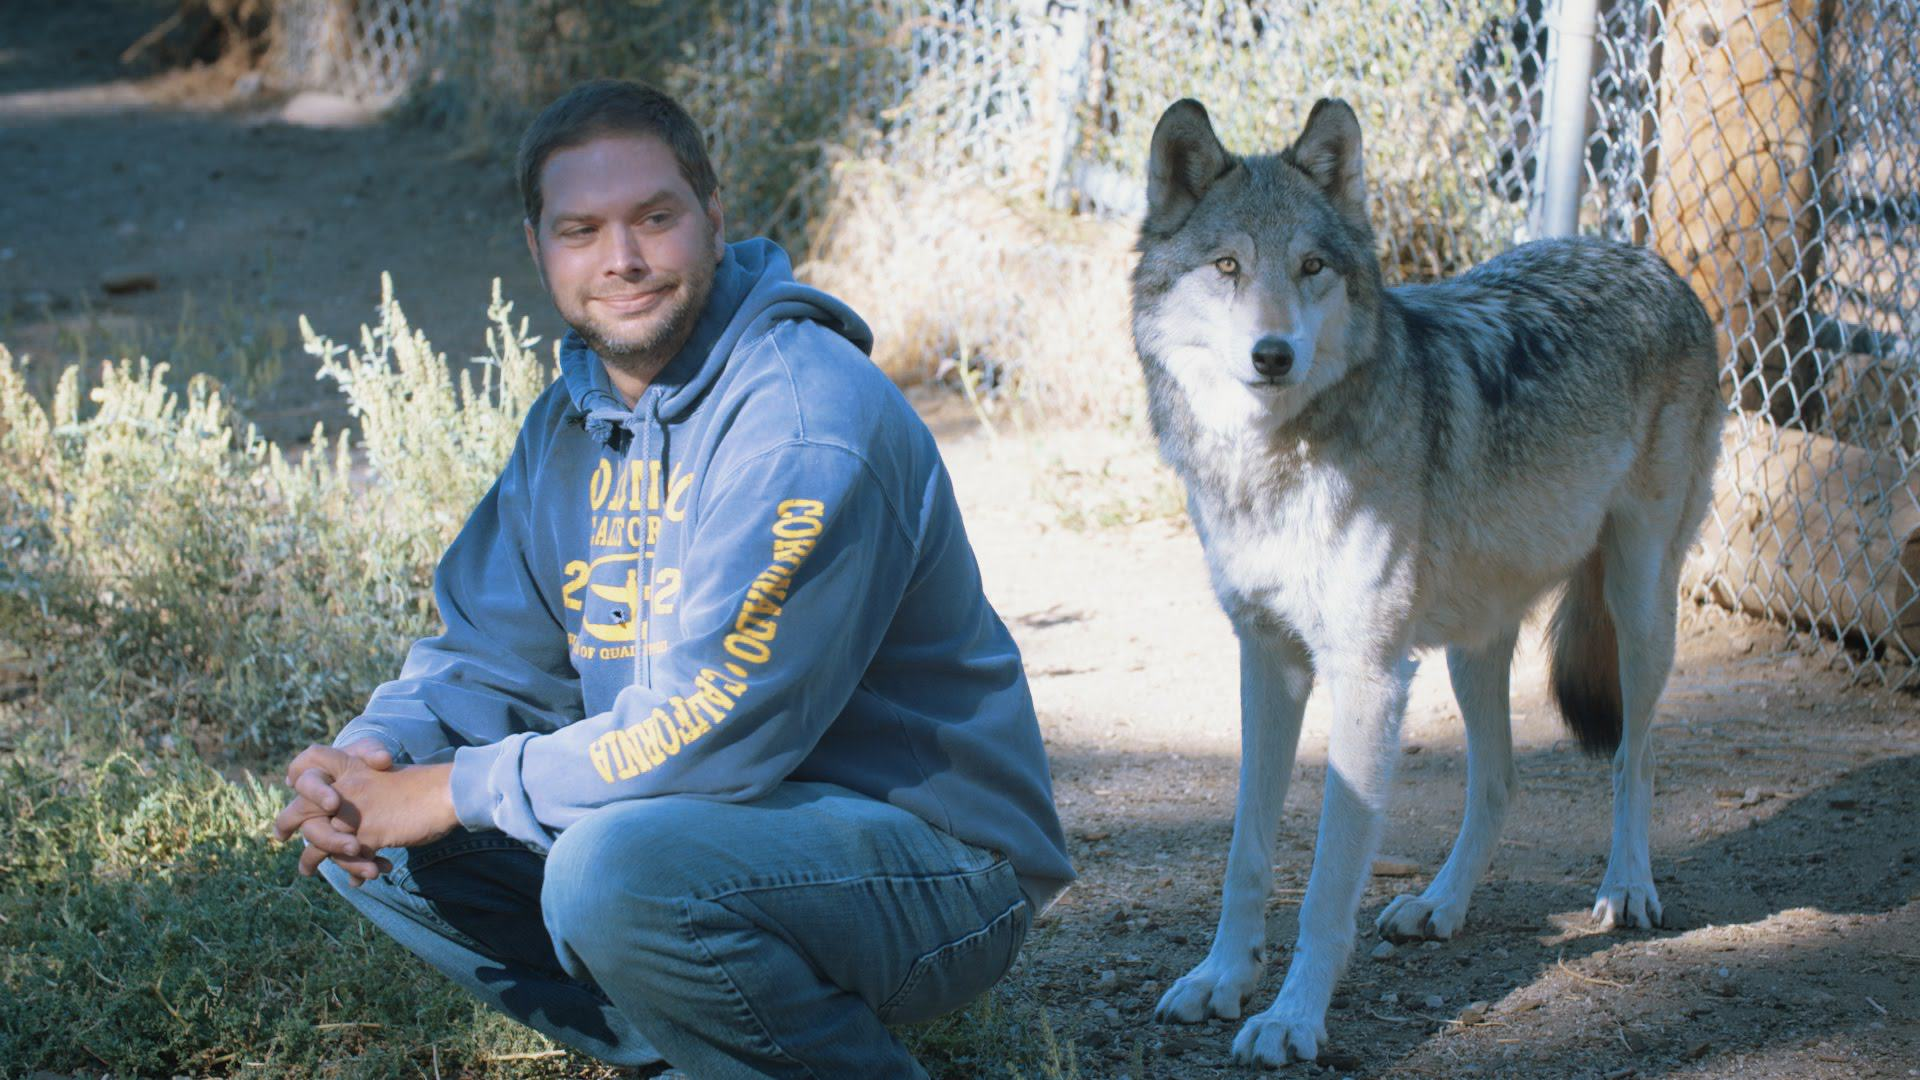 These Wolves Are Helping Veterans With Post Traumatic Stress Disorder Recover maxresdefault